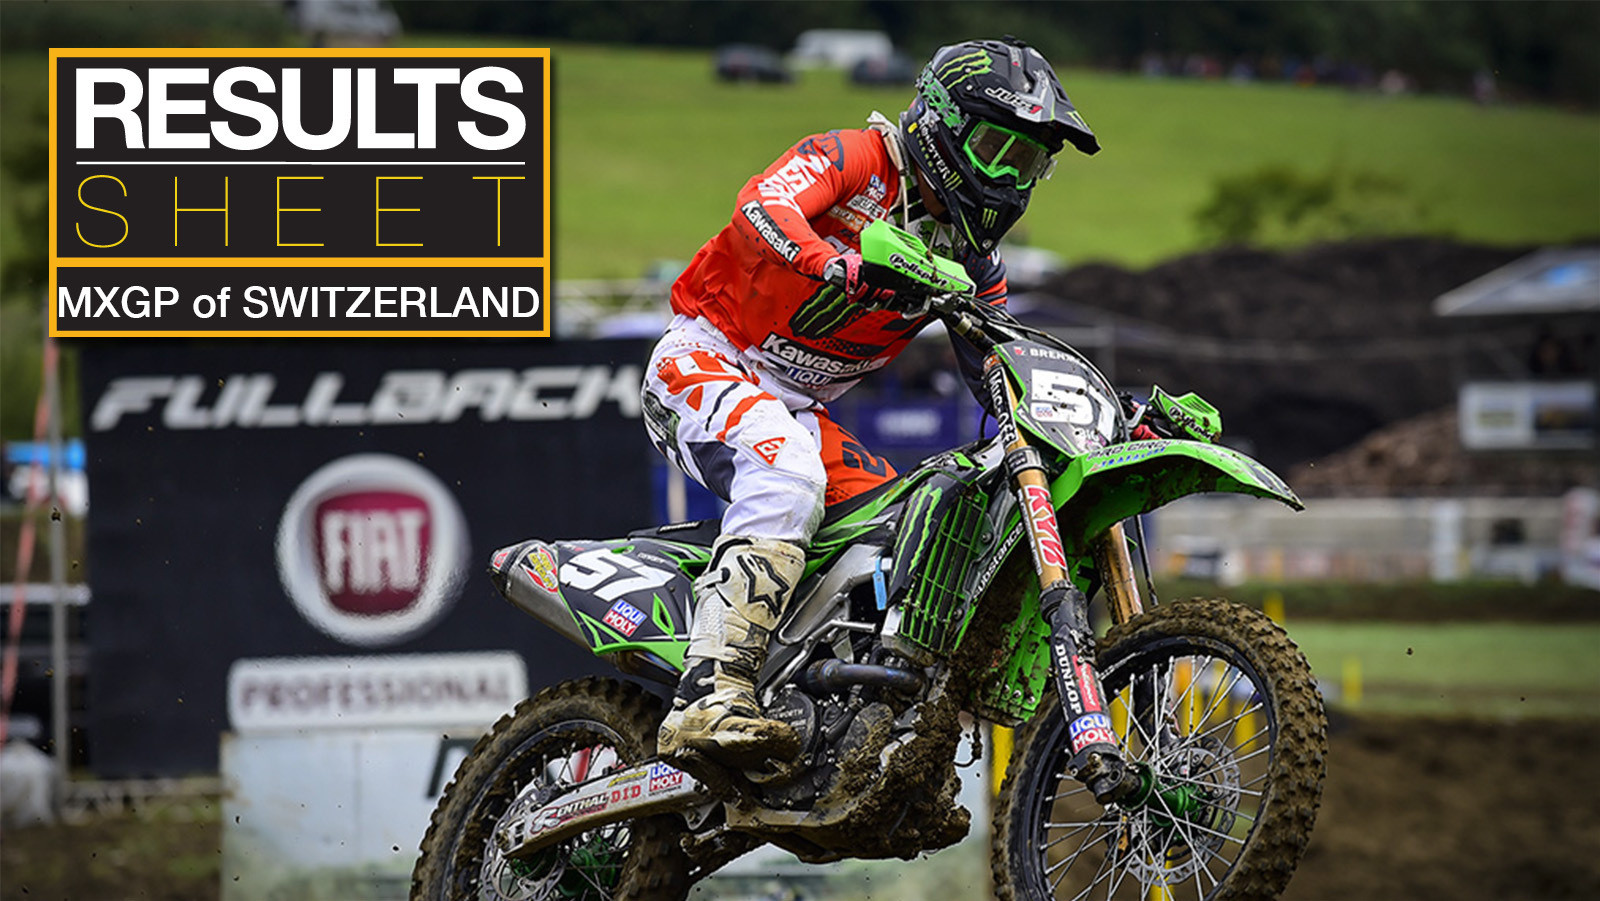 Results Sheet: 2017 MXGP of Switzerland